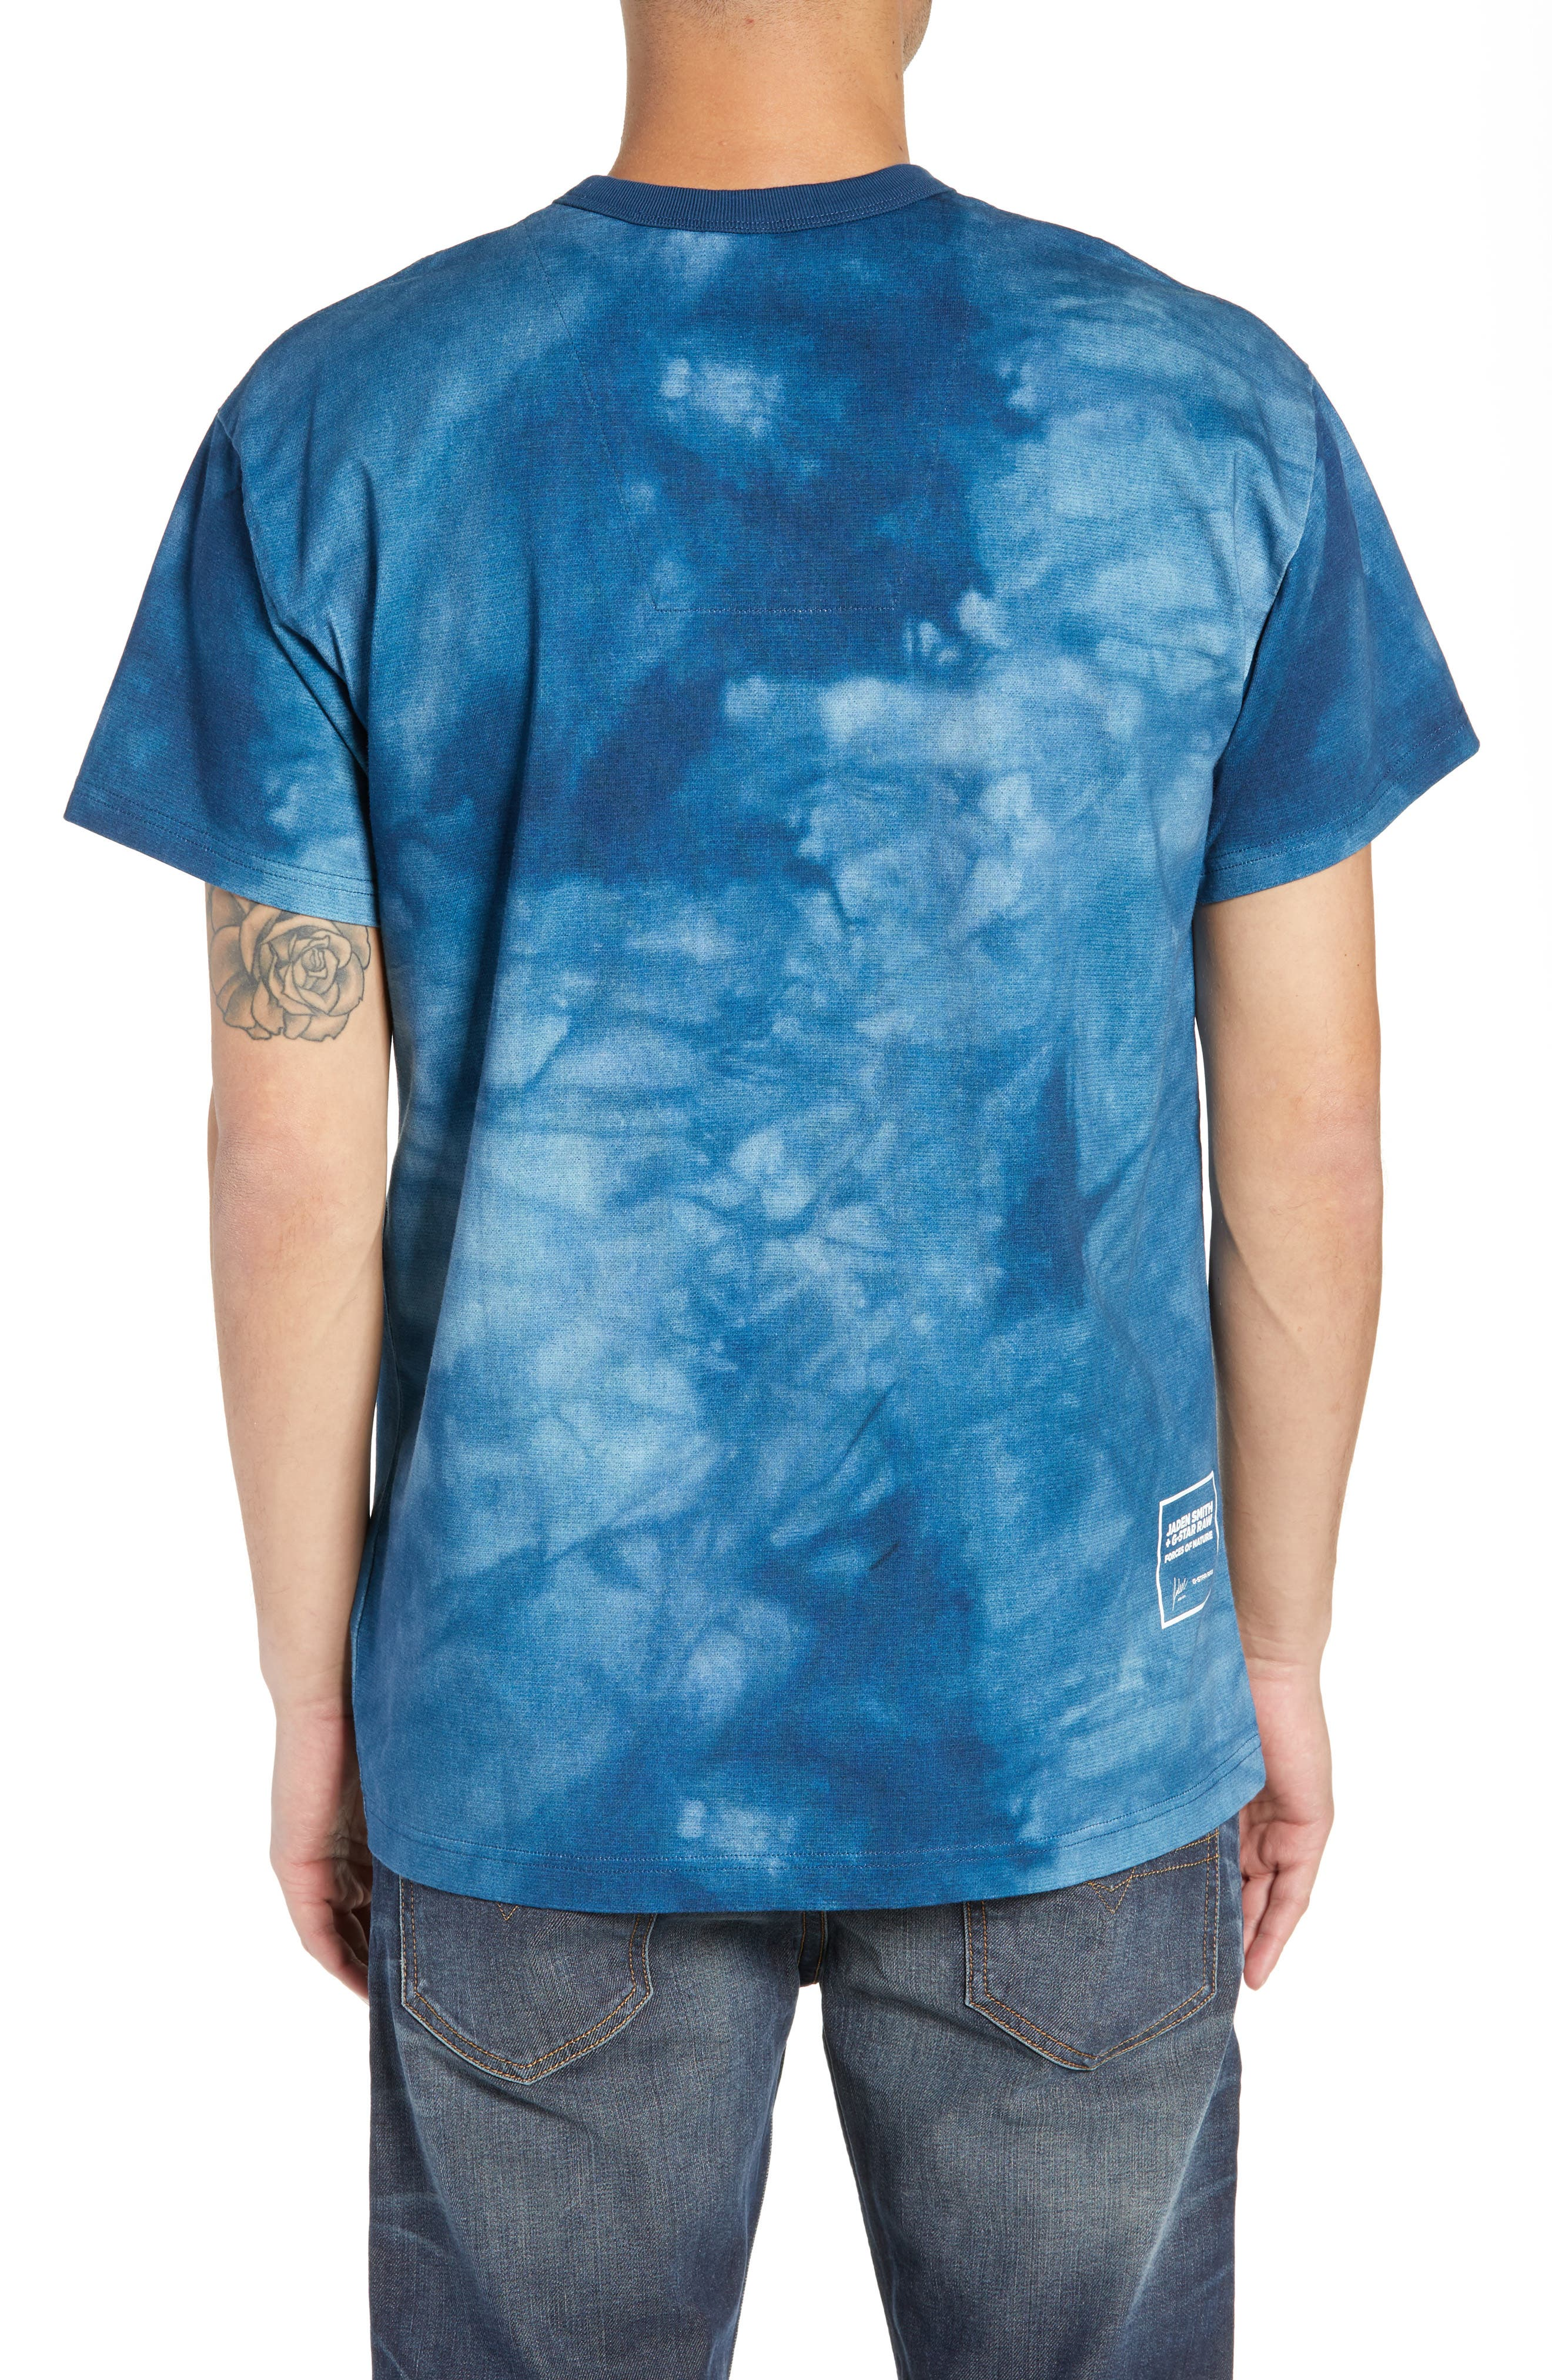 G-Star Cyrer Waterfall Loose T-Shirt,                             Alternate thumbnail 2, color,                             TEAL BLUE